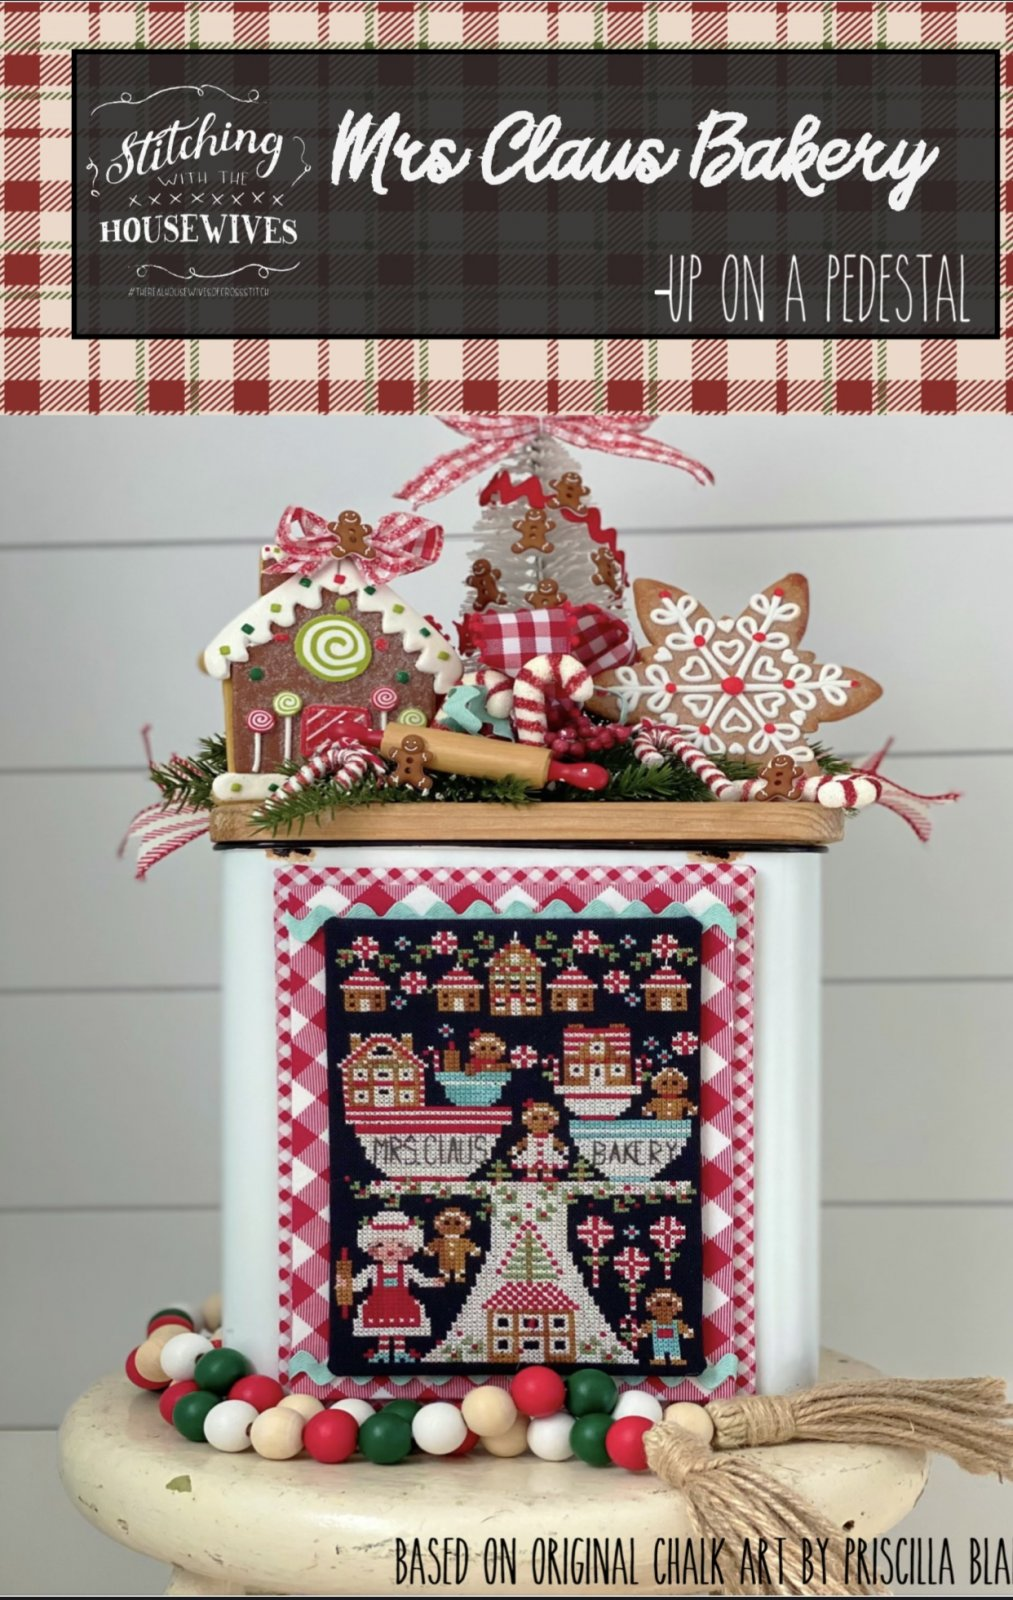 Mrs Claus Bakery by Stitching with the Housewives - Counted Cross Stitch Pattern